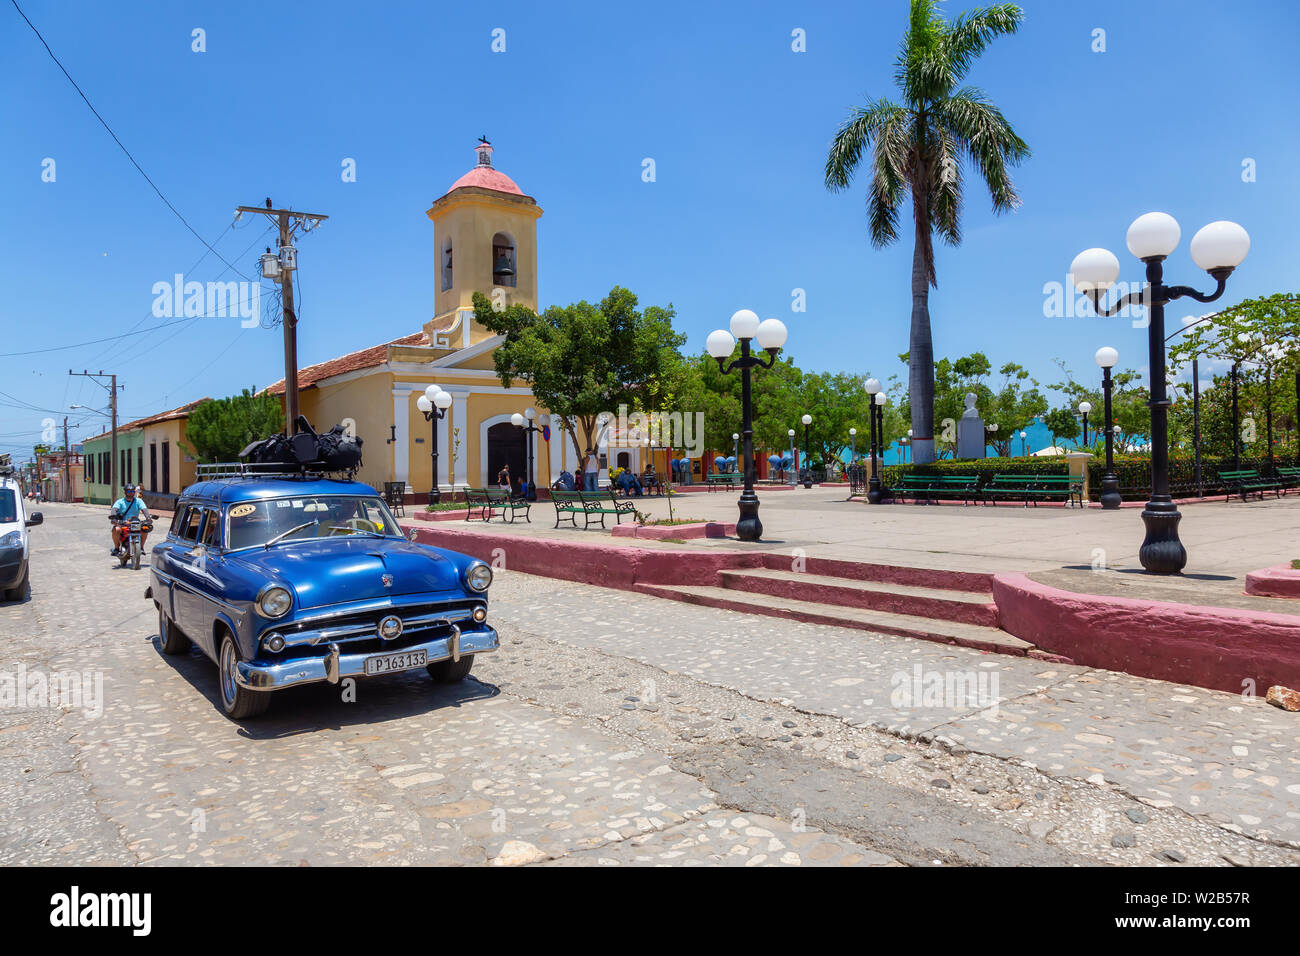 Trinidad, Cuba - June 6, 2019: View of an Old Classic American Car in the streets of a small Cuban Town during a vibrant sunny day. Stock Photo